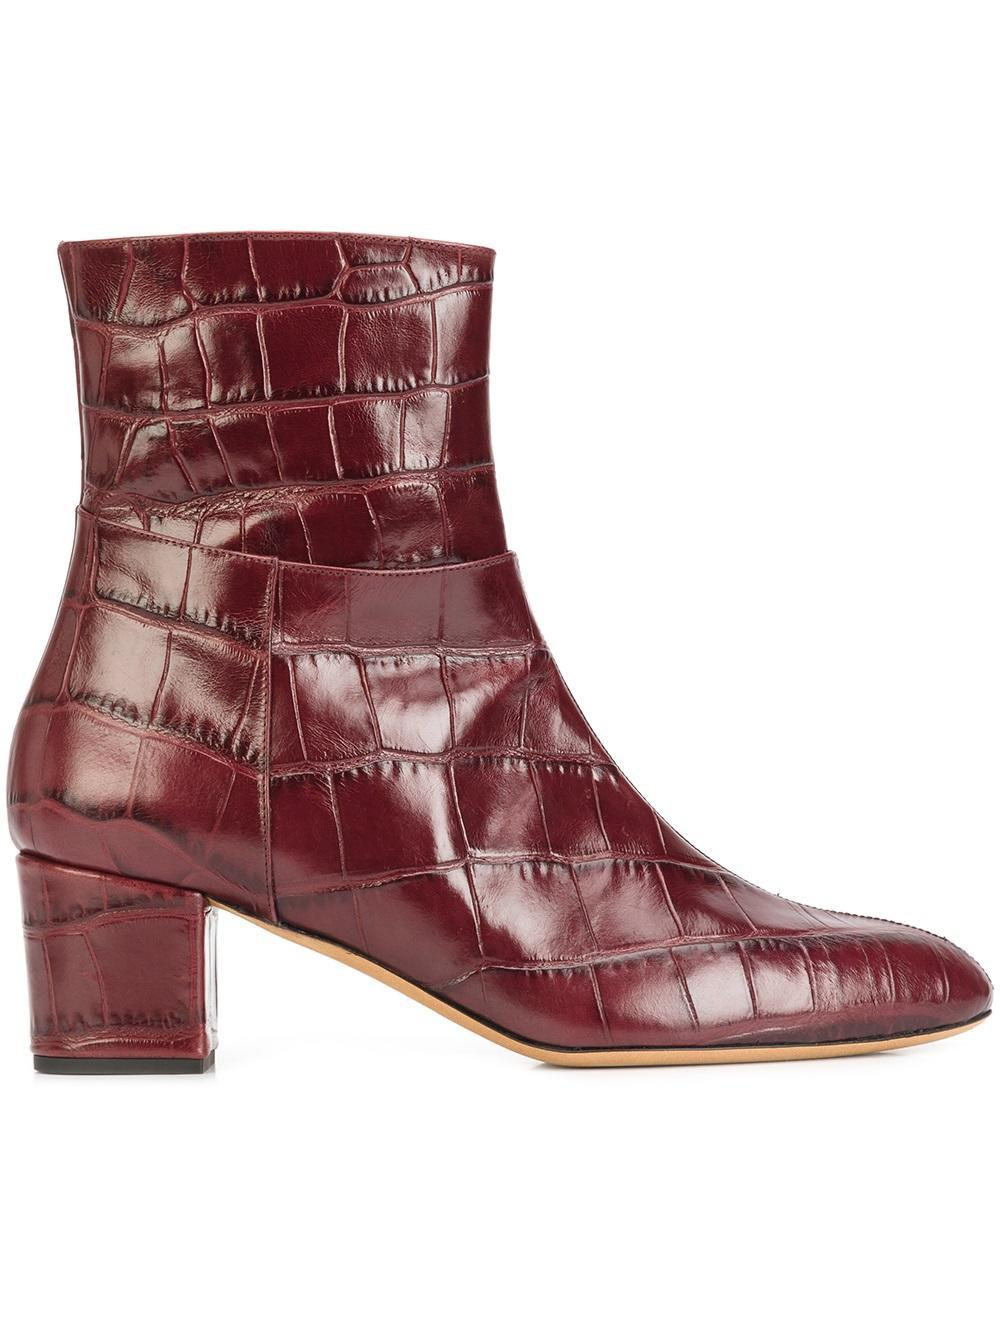 a7fdf443750 Lyst - Altuzarra  callie  Ankle Boots in Red